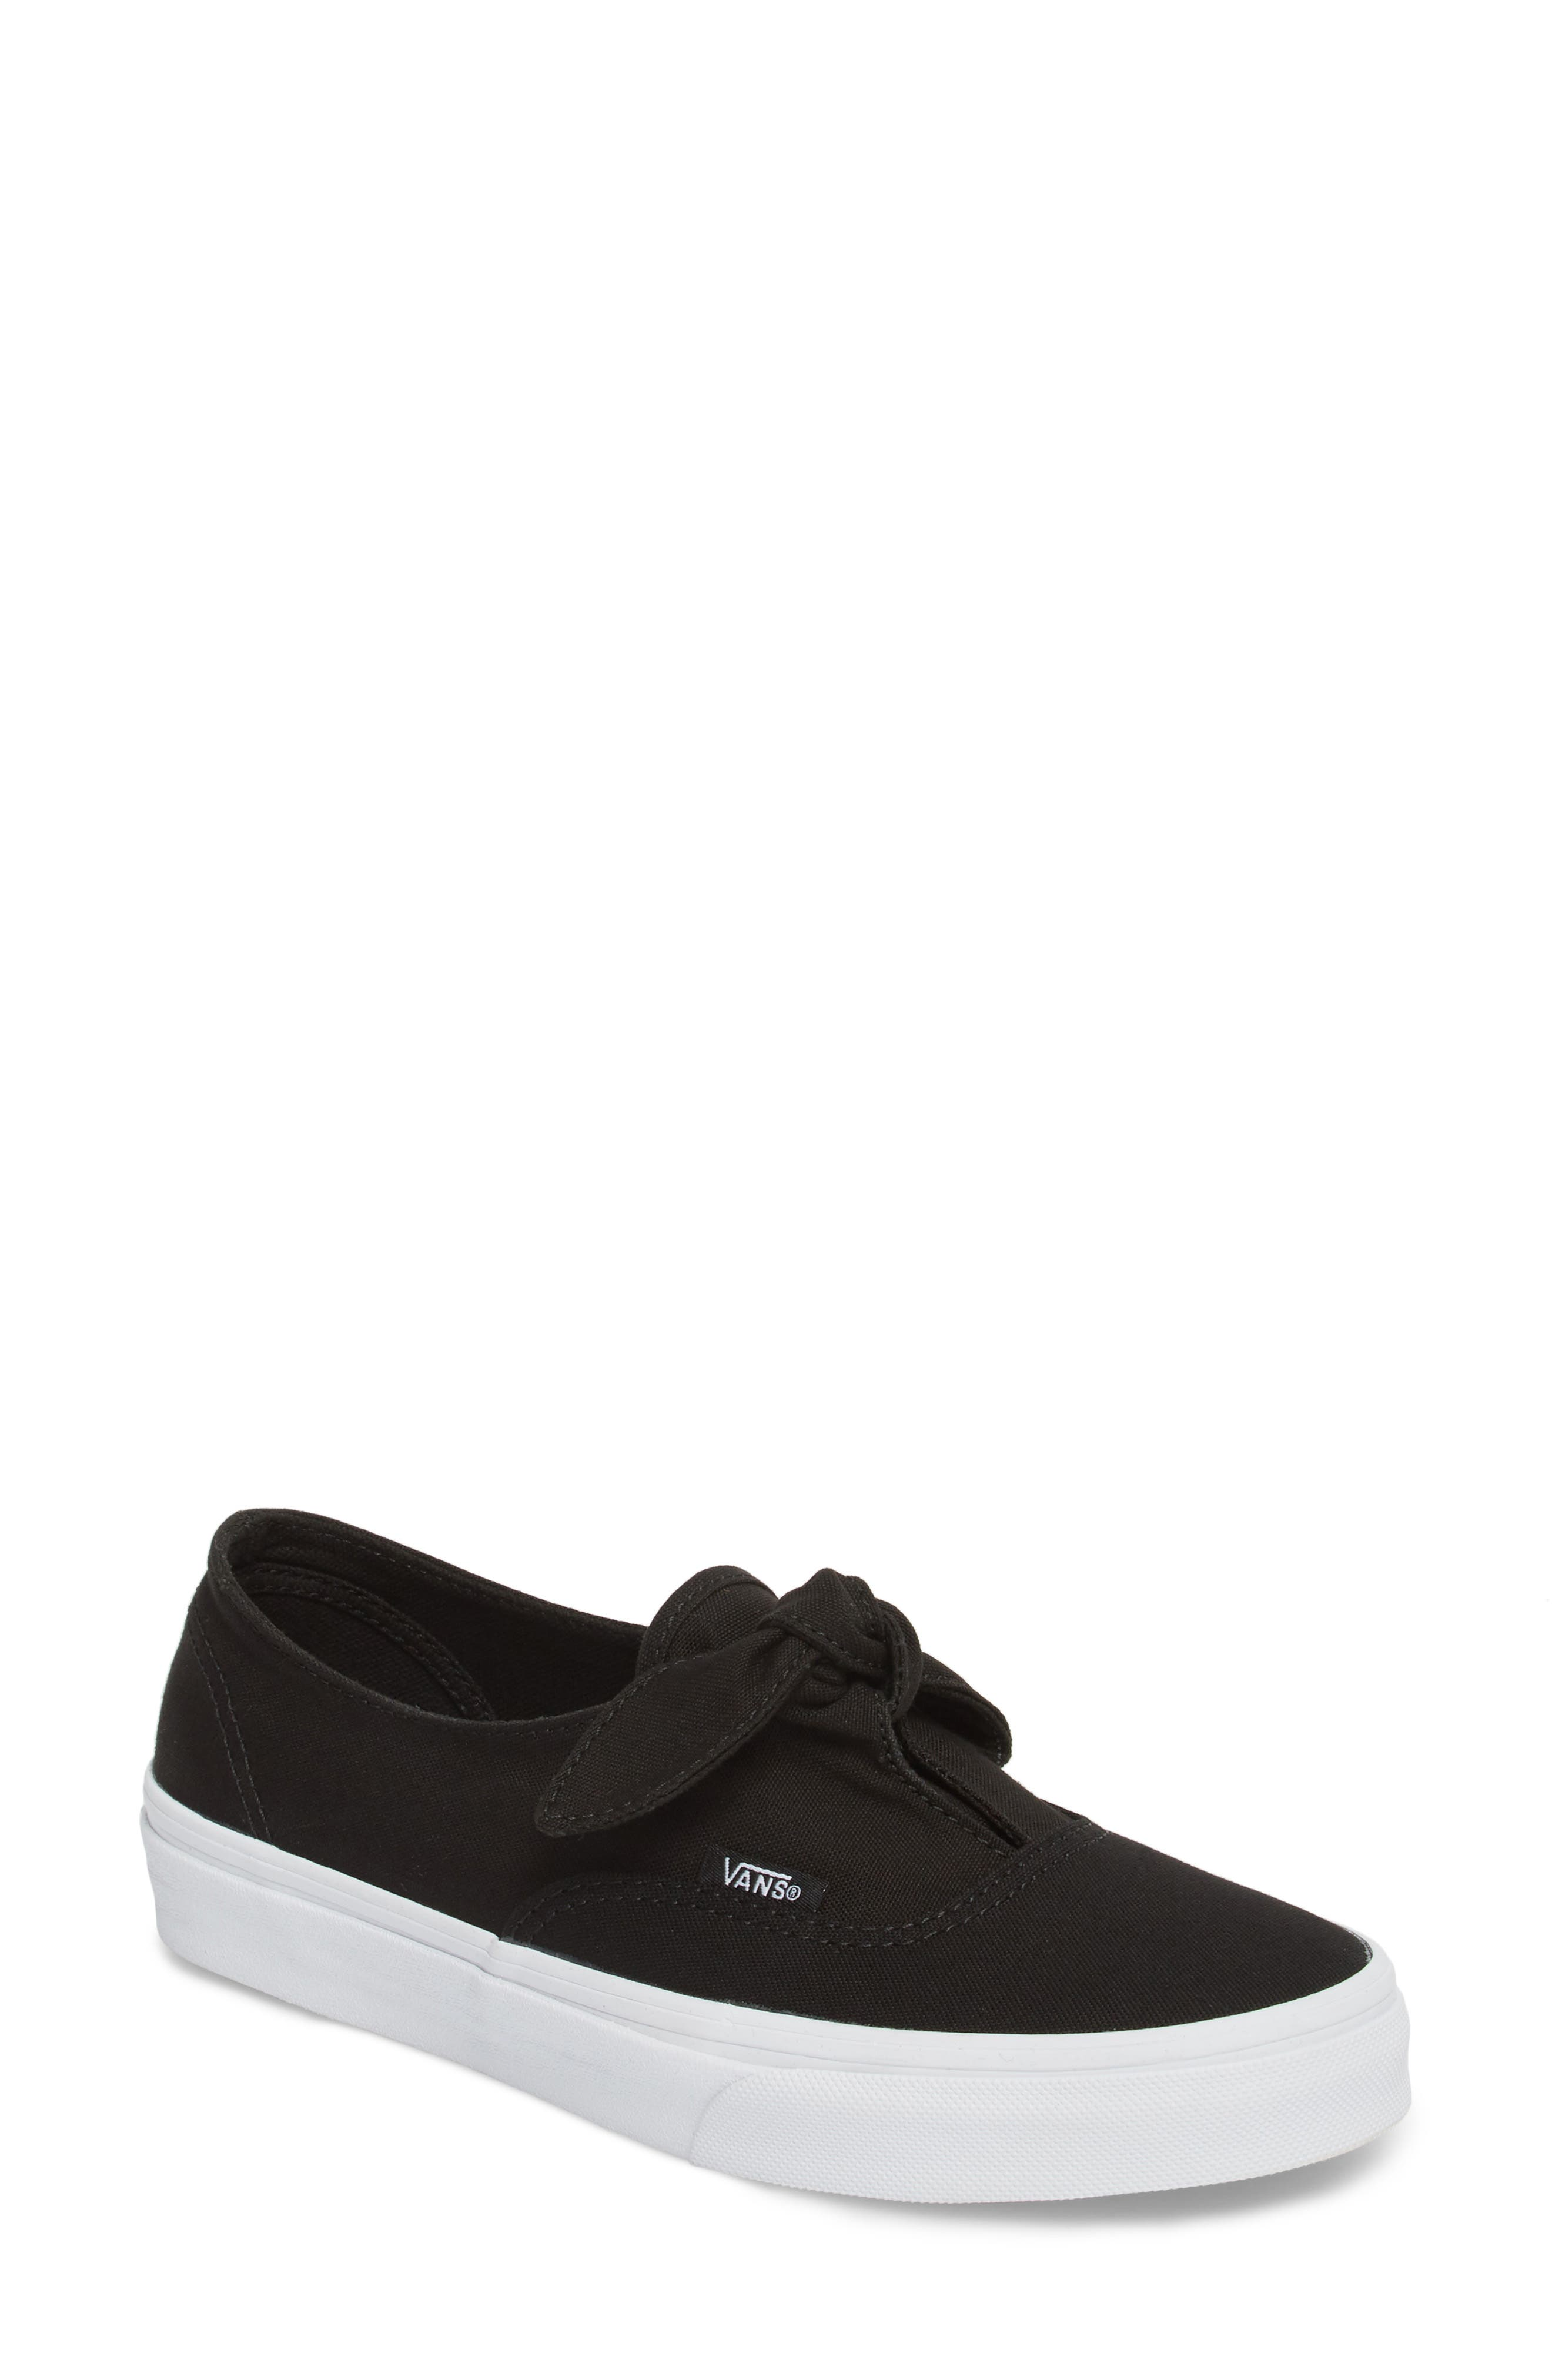 Main Image - Vans UA Authentic Knotted Slip-On Sneaker (Women)